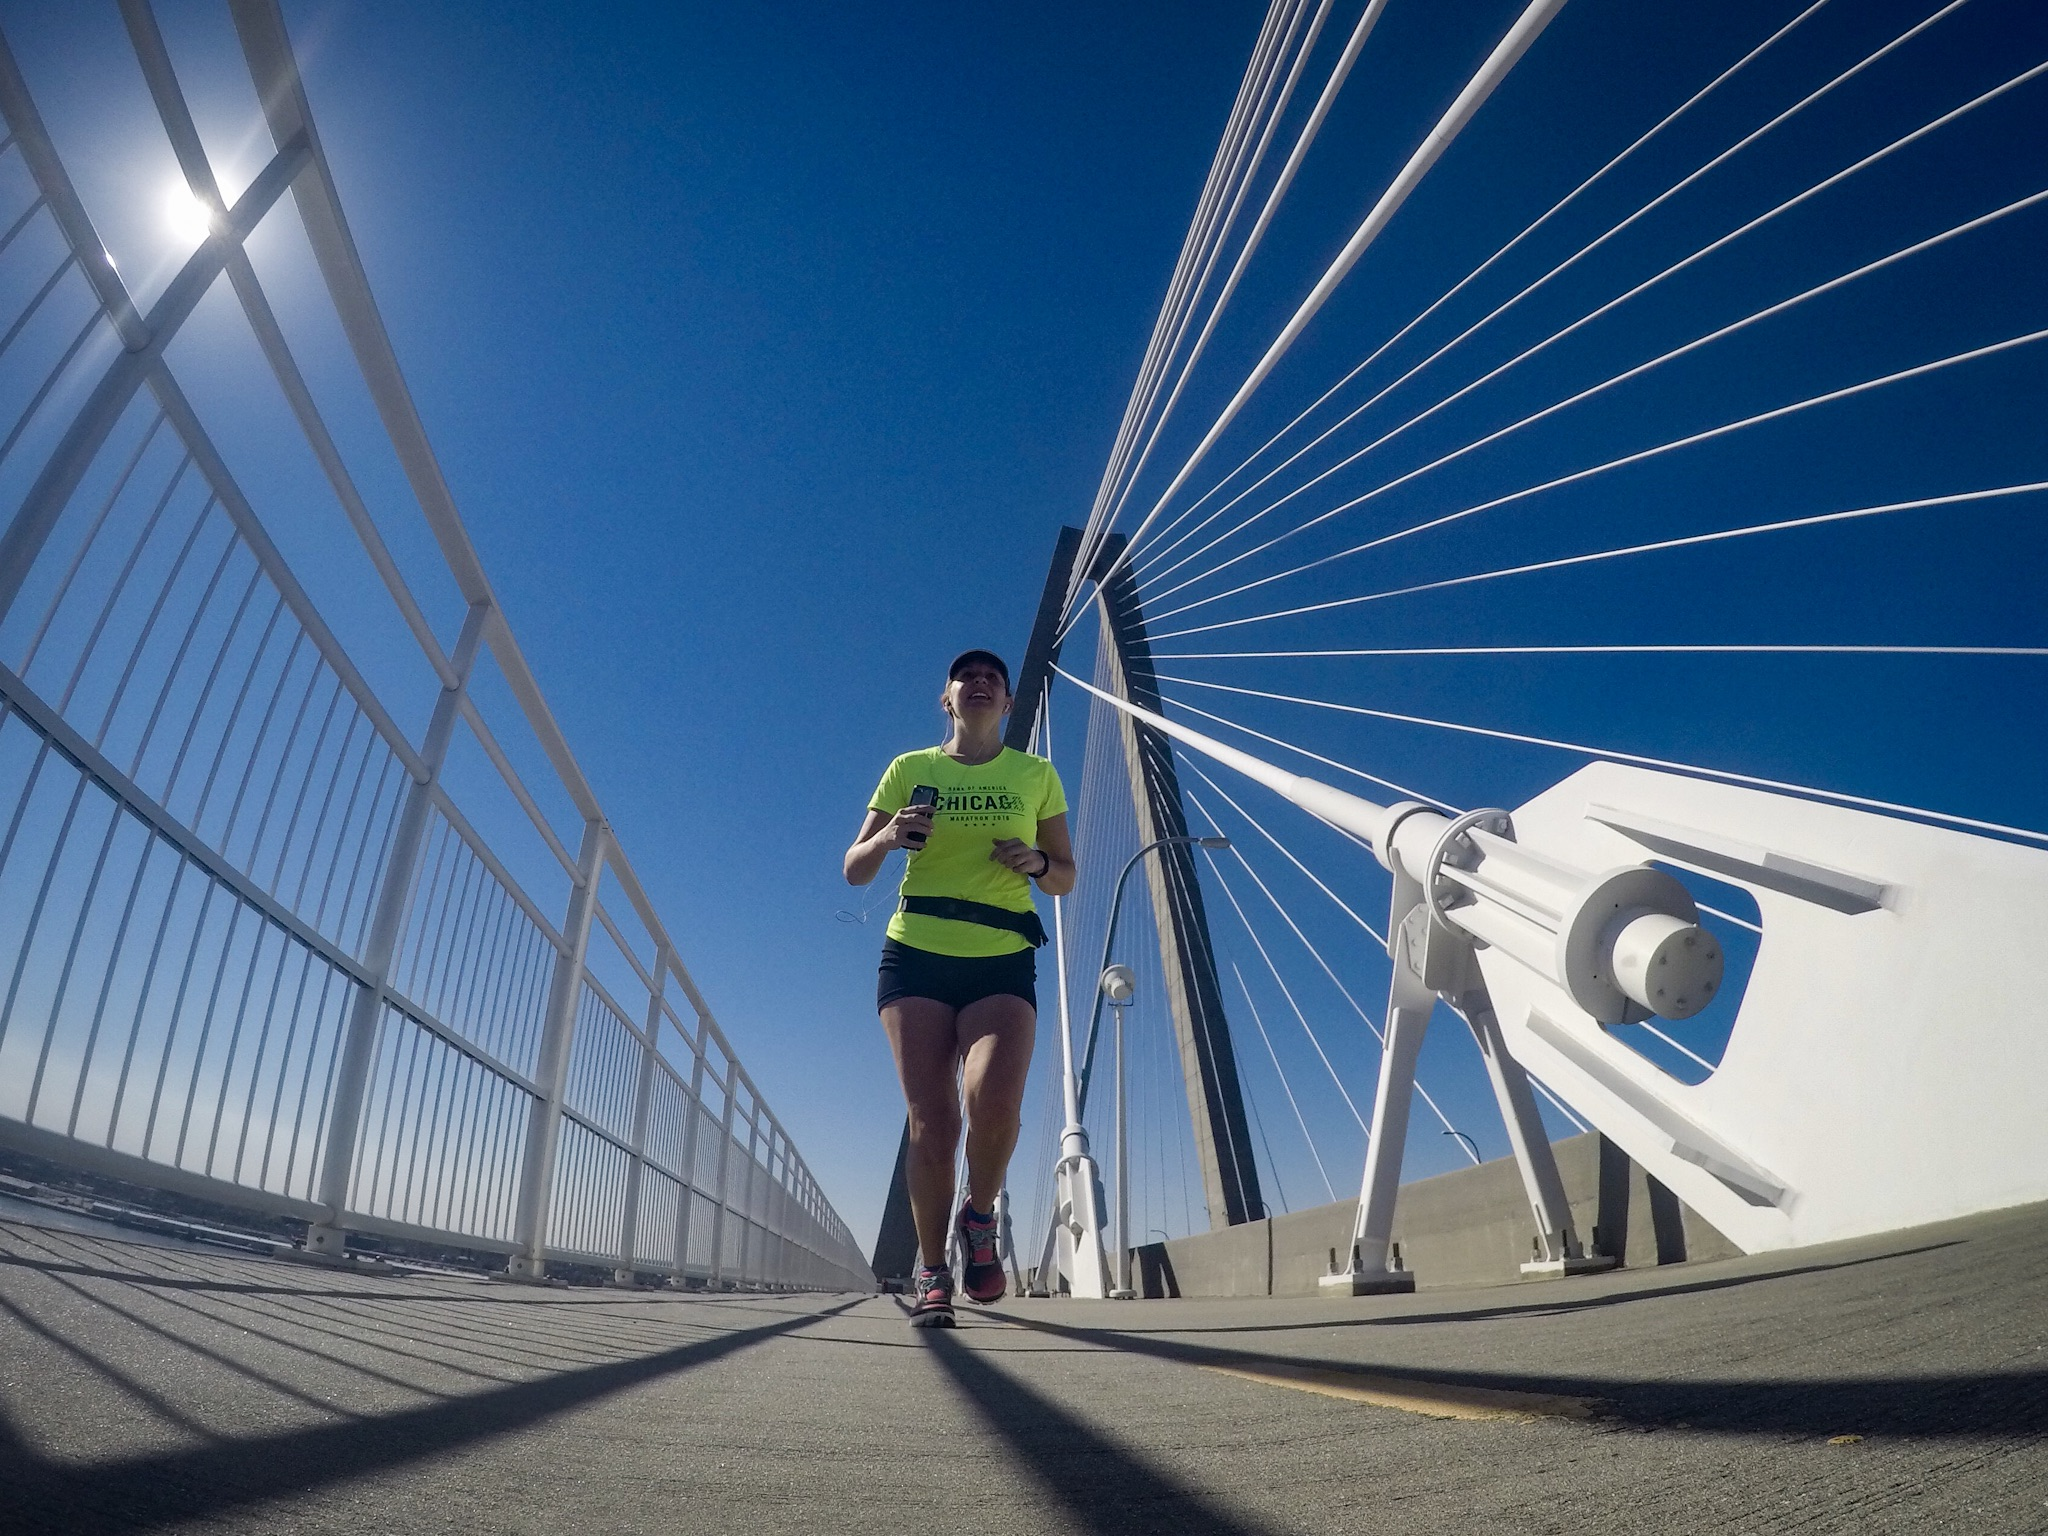 Part of the East Coast Greenway is the Arthur Ravenel Jr. Bridge, the bike/ped lanes being dedicated to Garrett P. Wonders, a cyclist who was killed during training for Olympic Trails. The stretch is known today as Wonders Way.